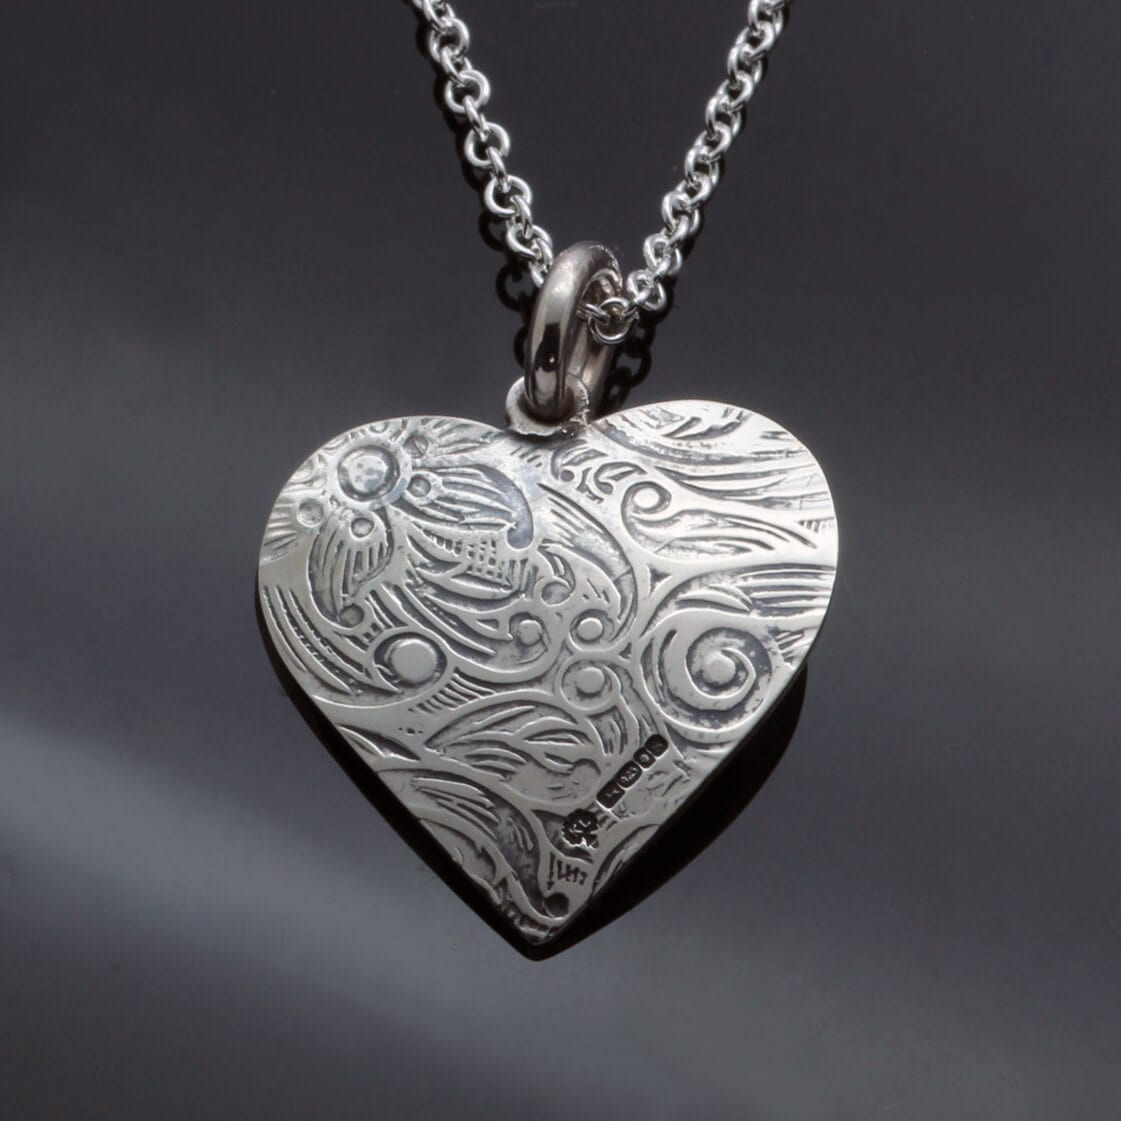 Handcrafted solid SIlver Paisley heart pendant handmade